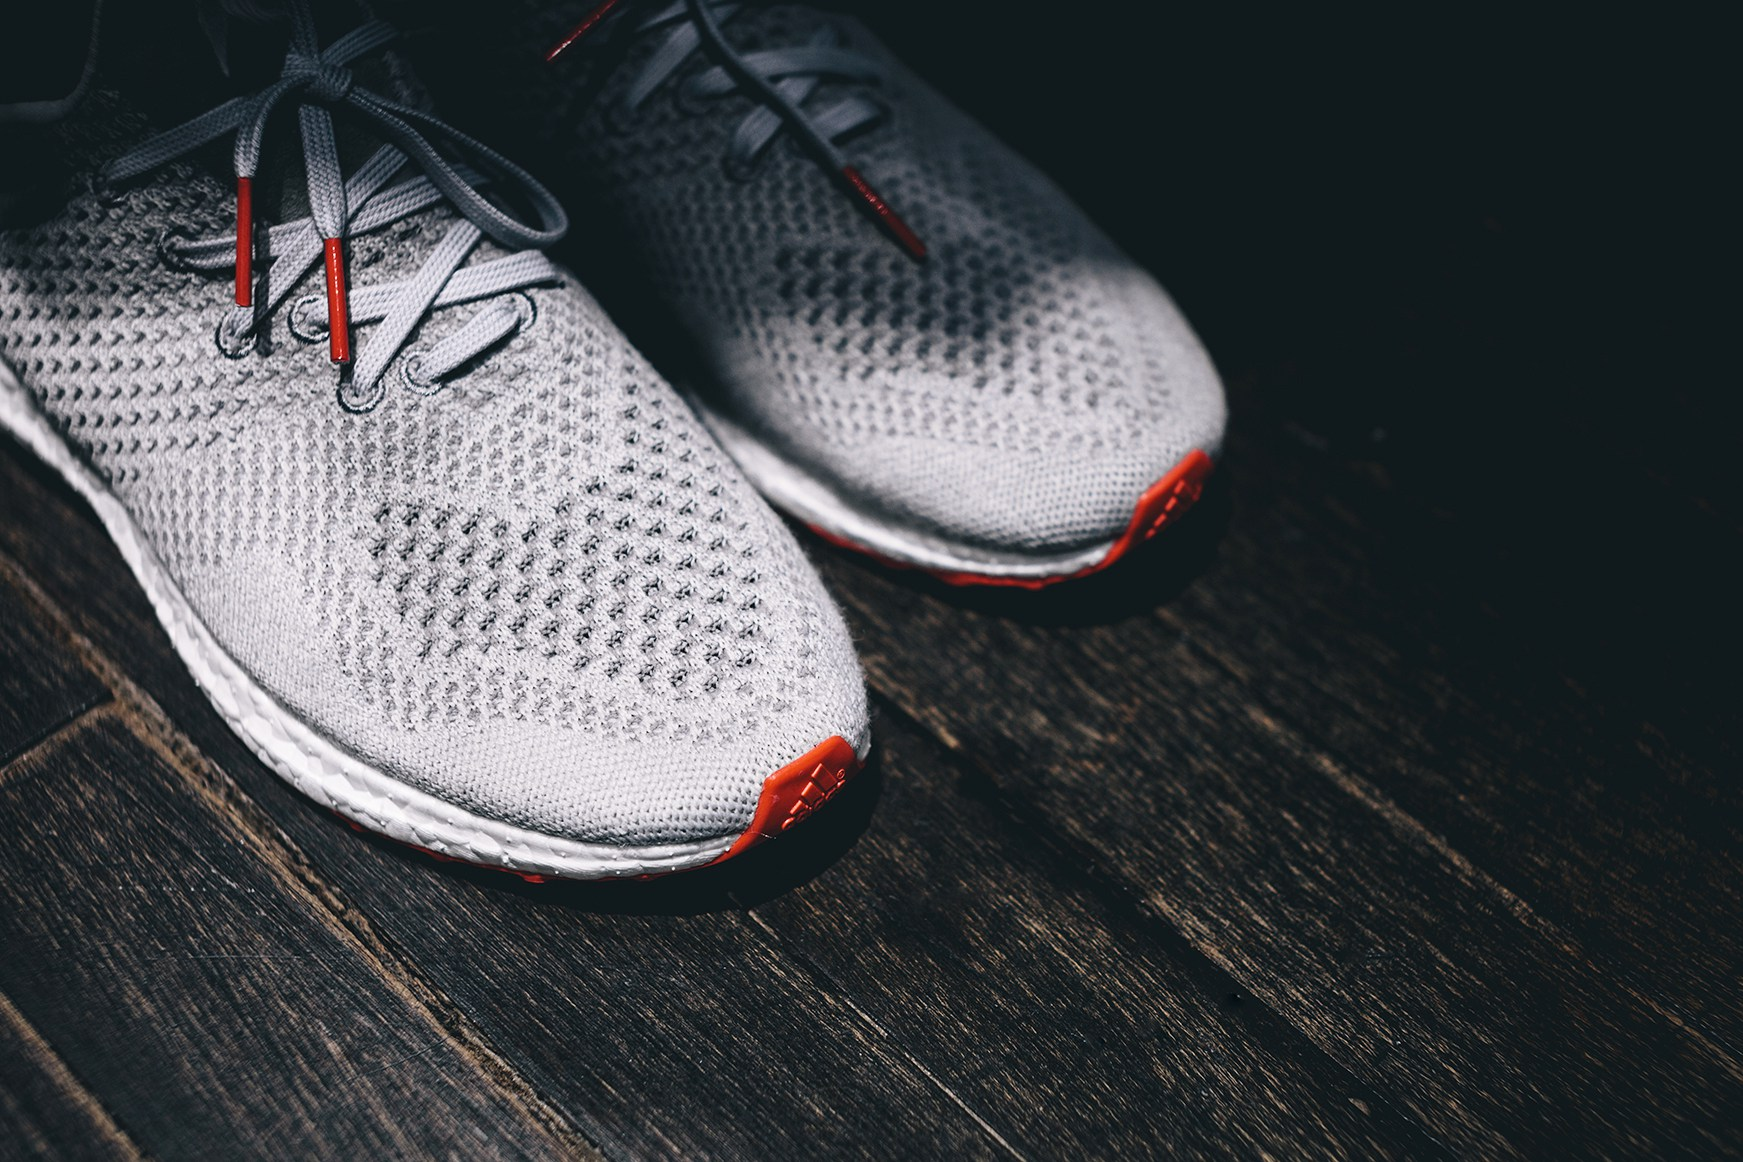 a-closer-look-at-the-solebox-x-adidas-consortium-ultra-boost-uncaged-4